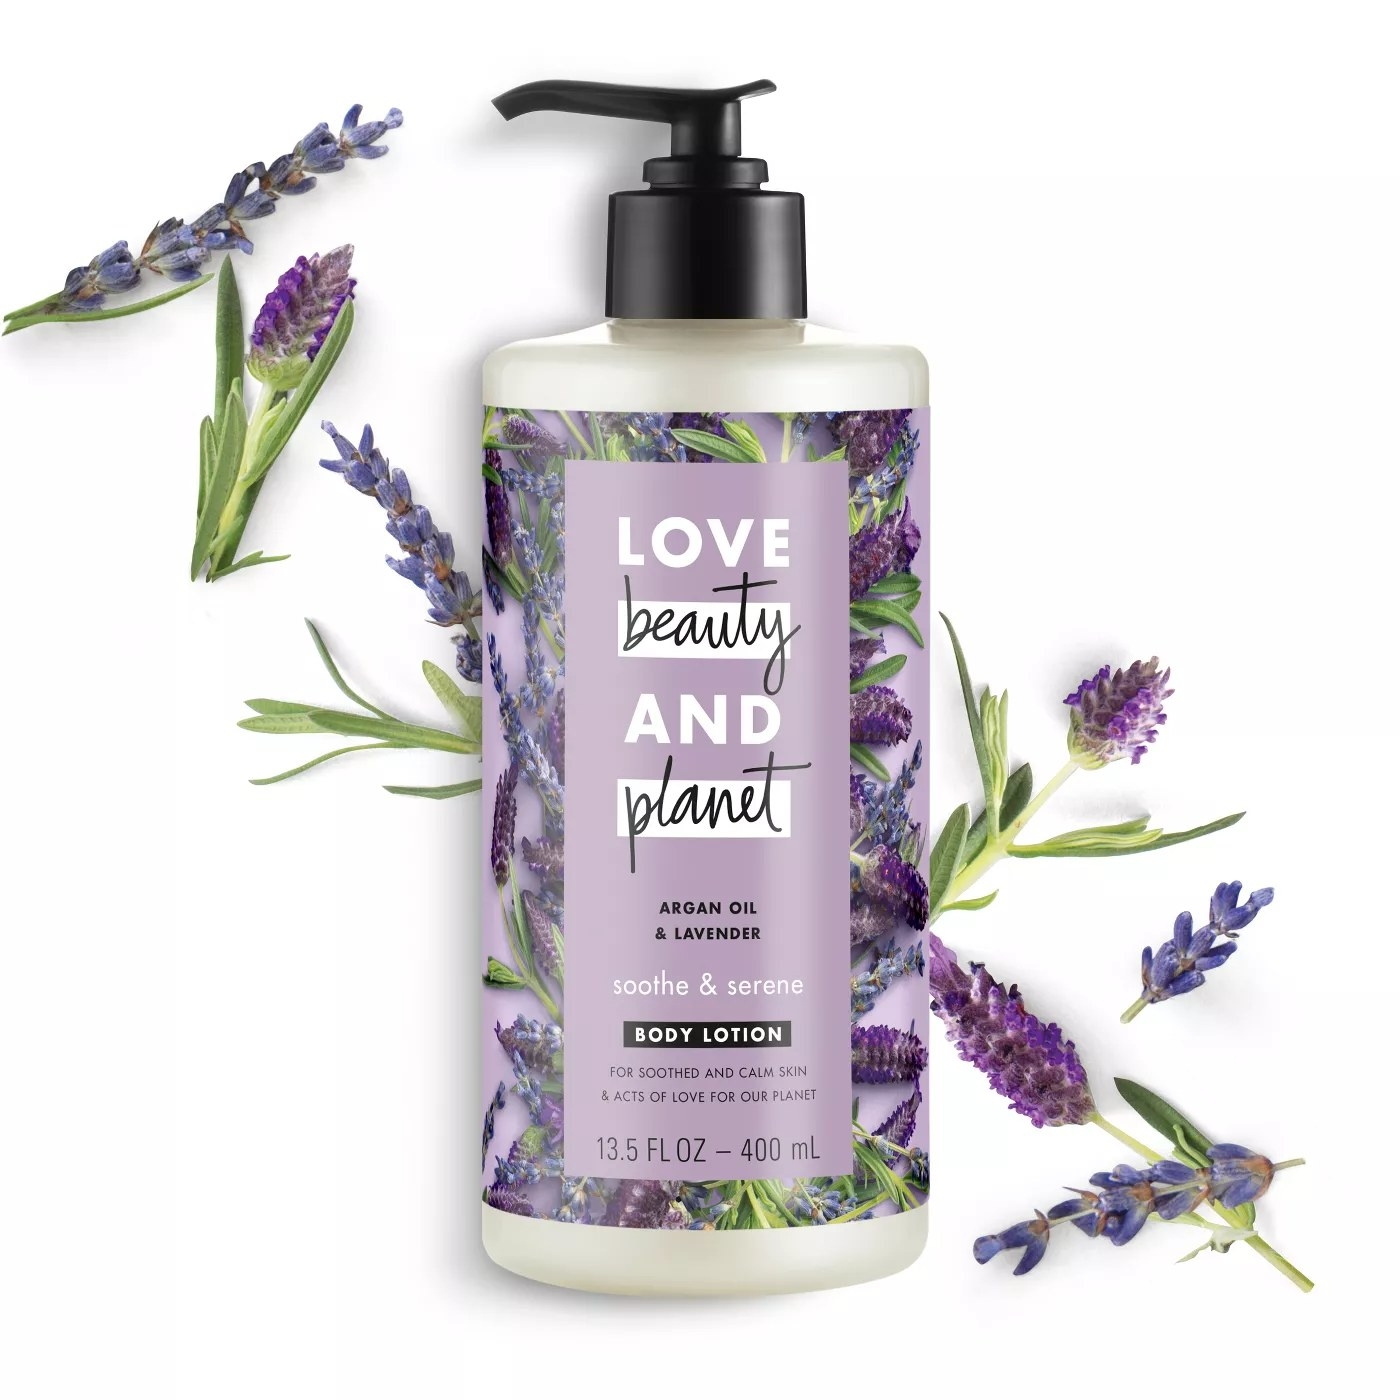 The 13.5-oz bottle of argan oil and lavender body lotion from Love, Beauty, And Planet